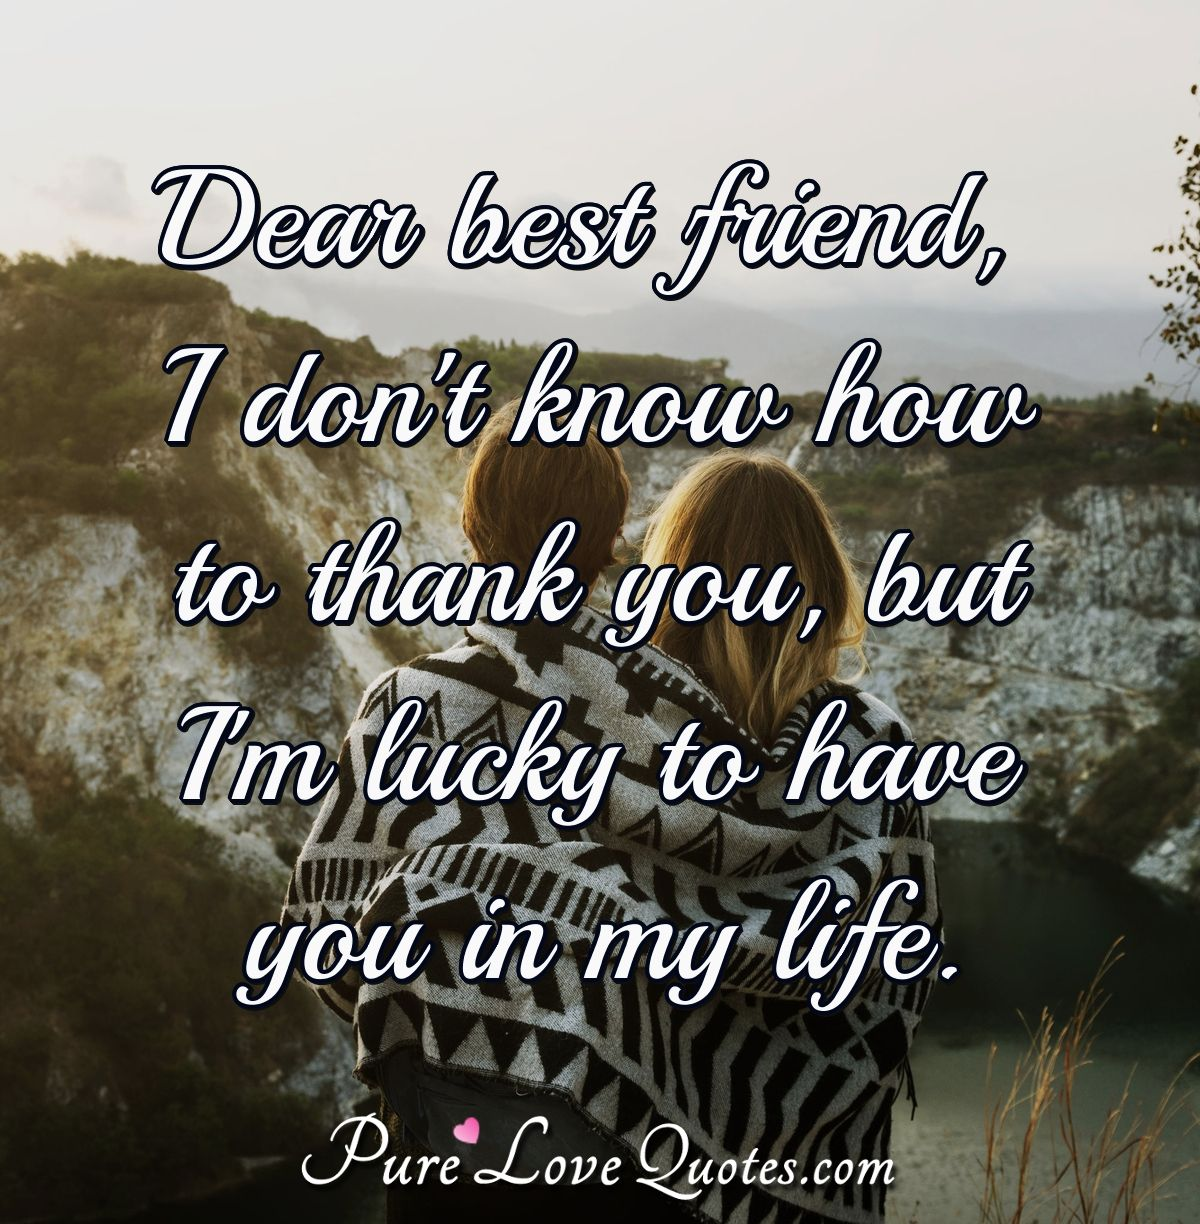 dear best friend i don t know how to thank you but i m lucky to